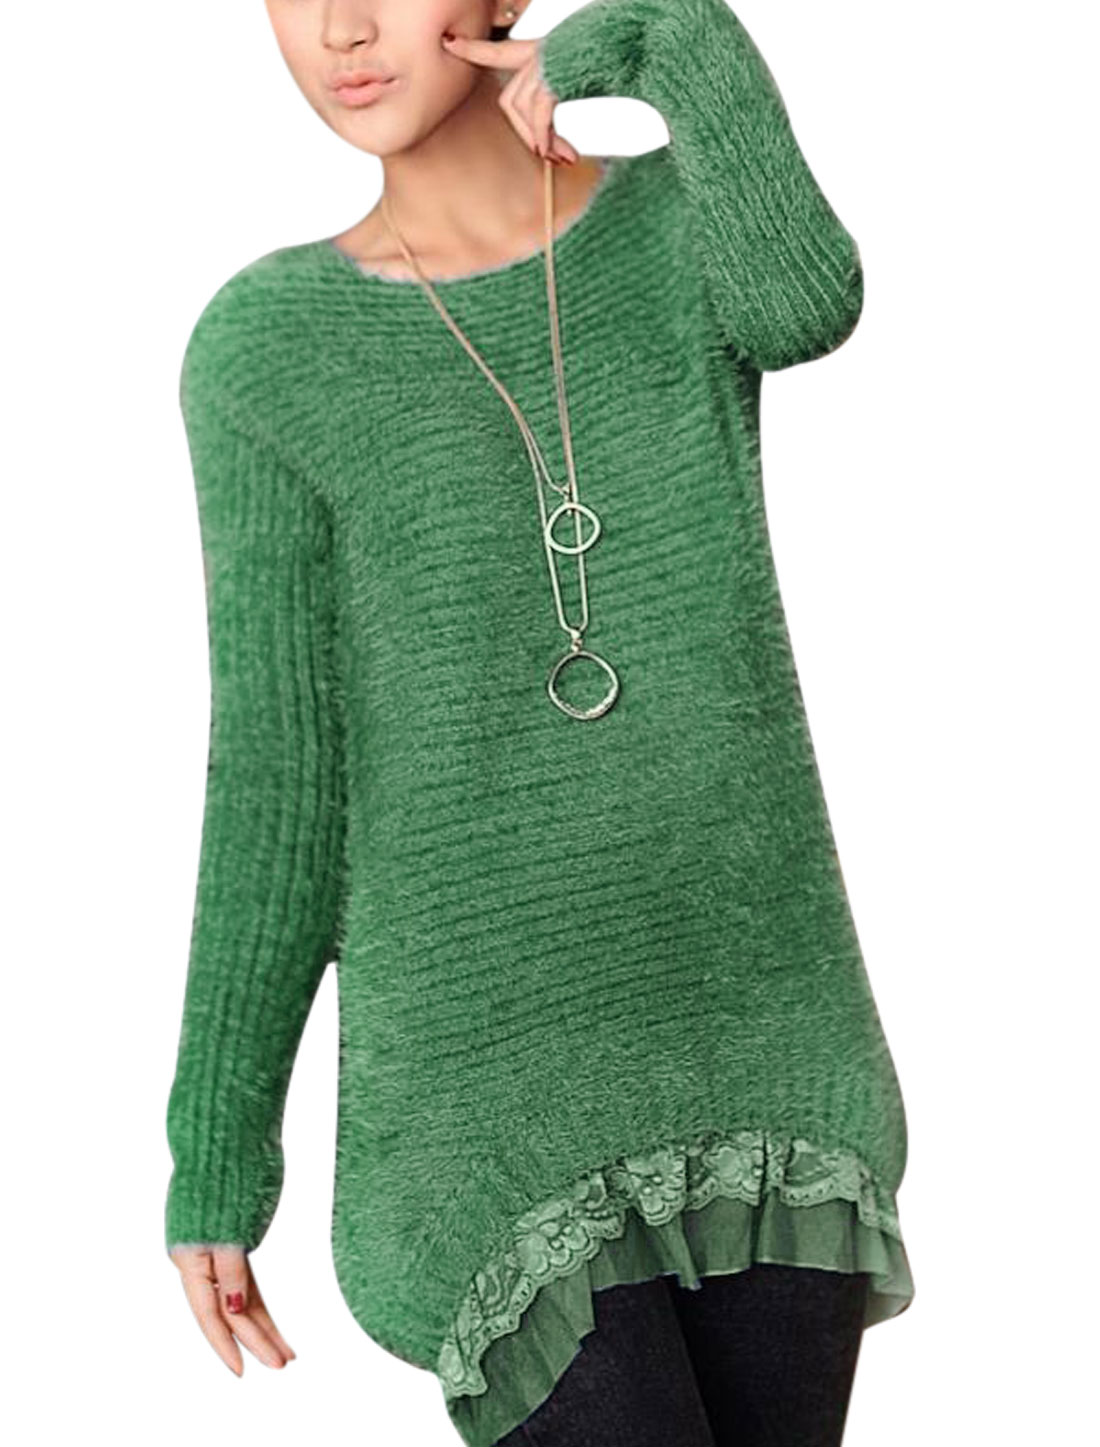 Lady Round Neck Pullover Long Sleeve Leisure Tunic Sweater Green XS